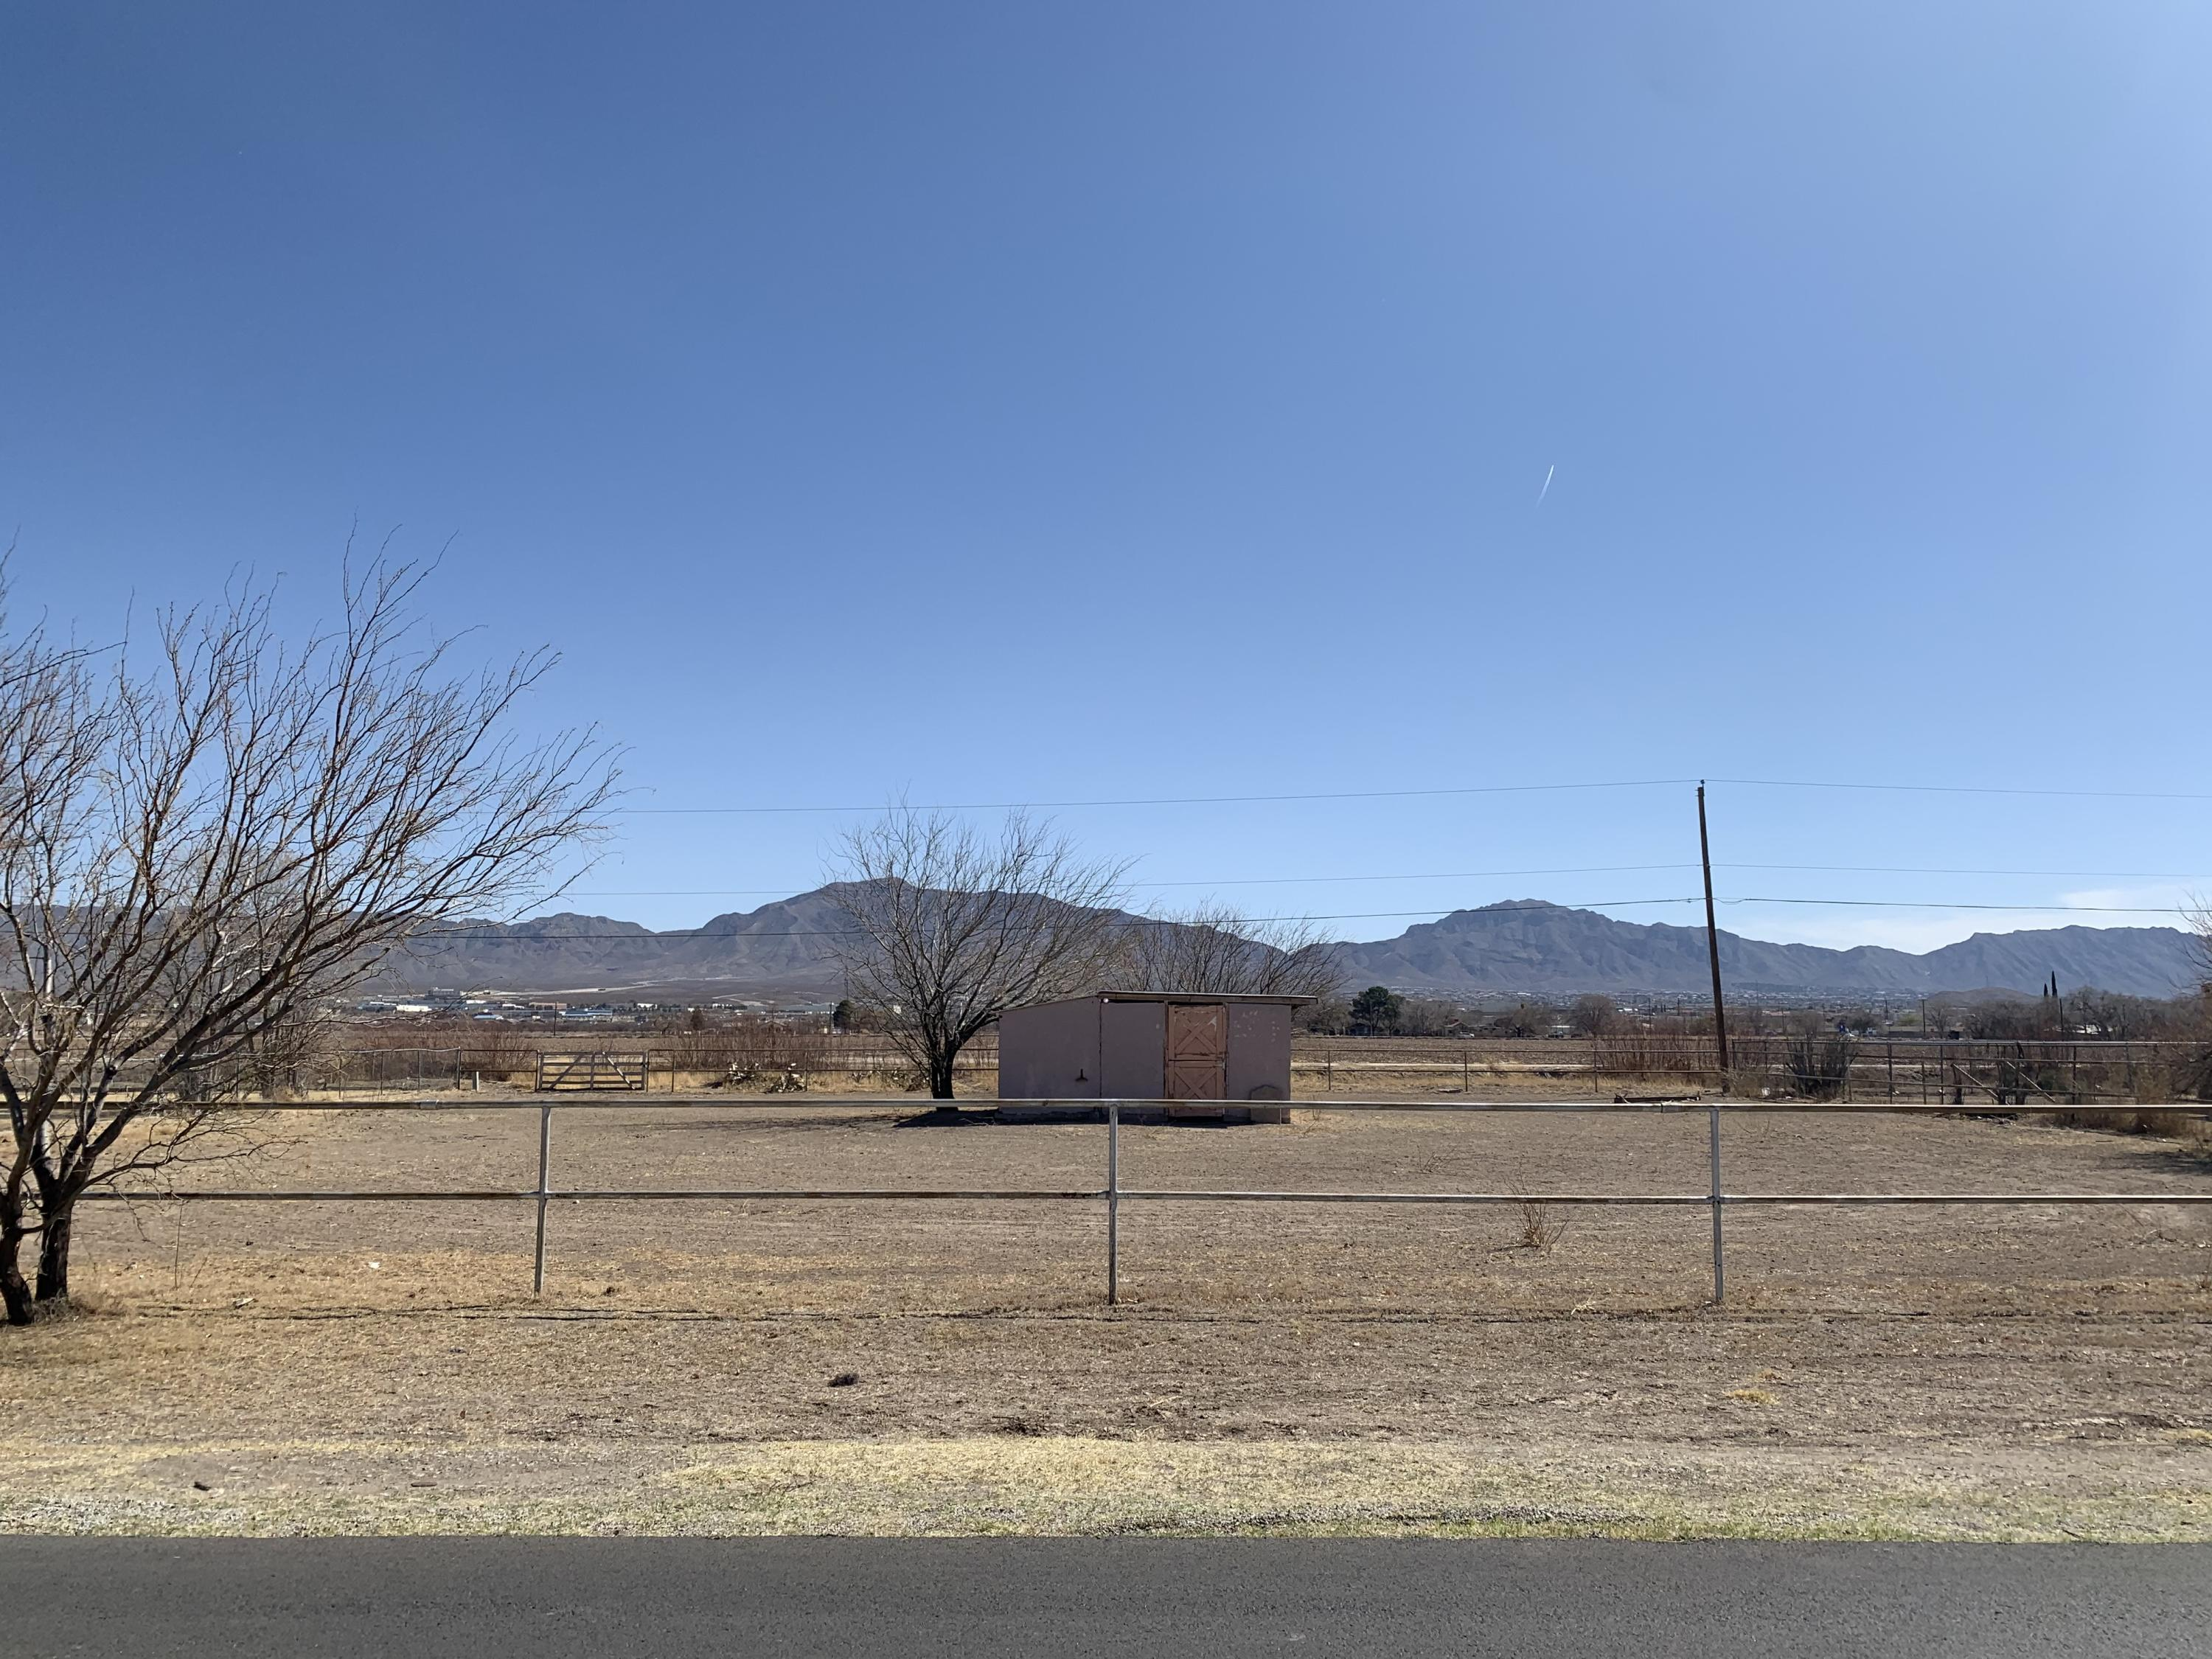 6468 UPPER VALLEY, El Paso, Texas 79932, ,Residential,For sale,UPPER VALLEY,842093